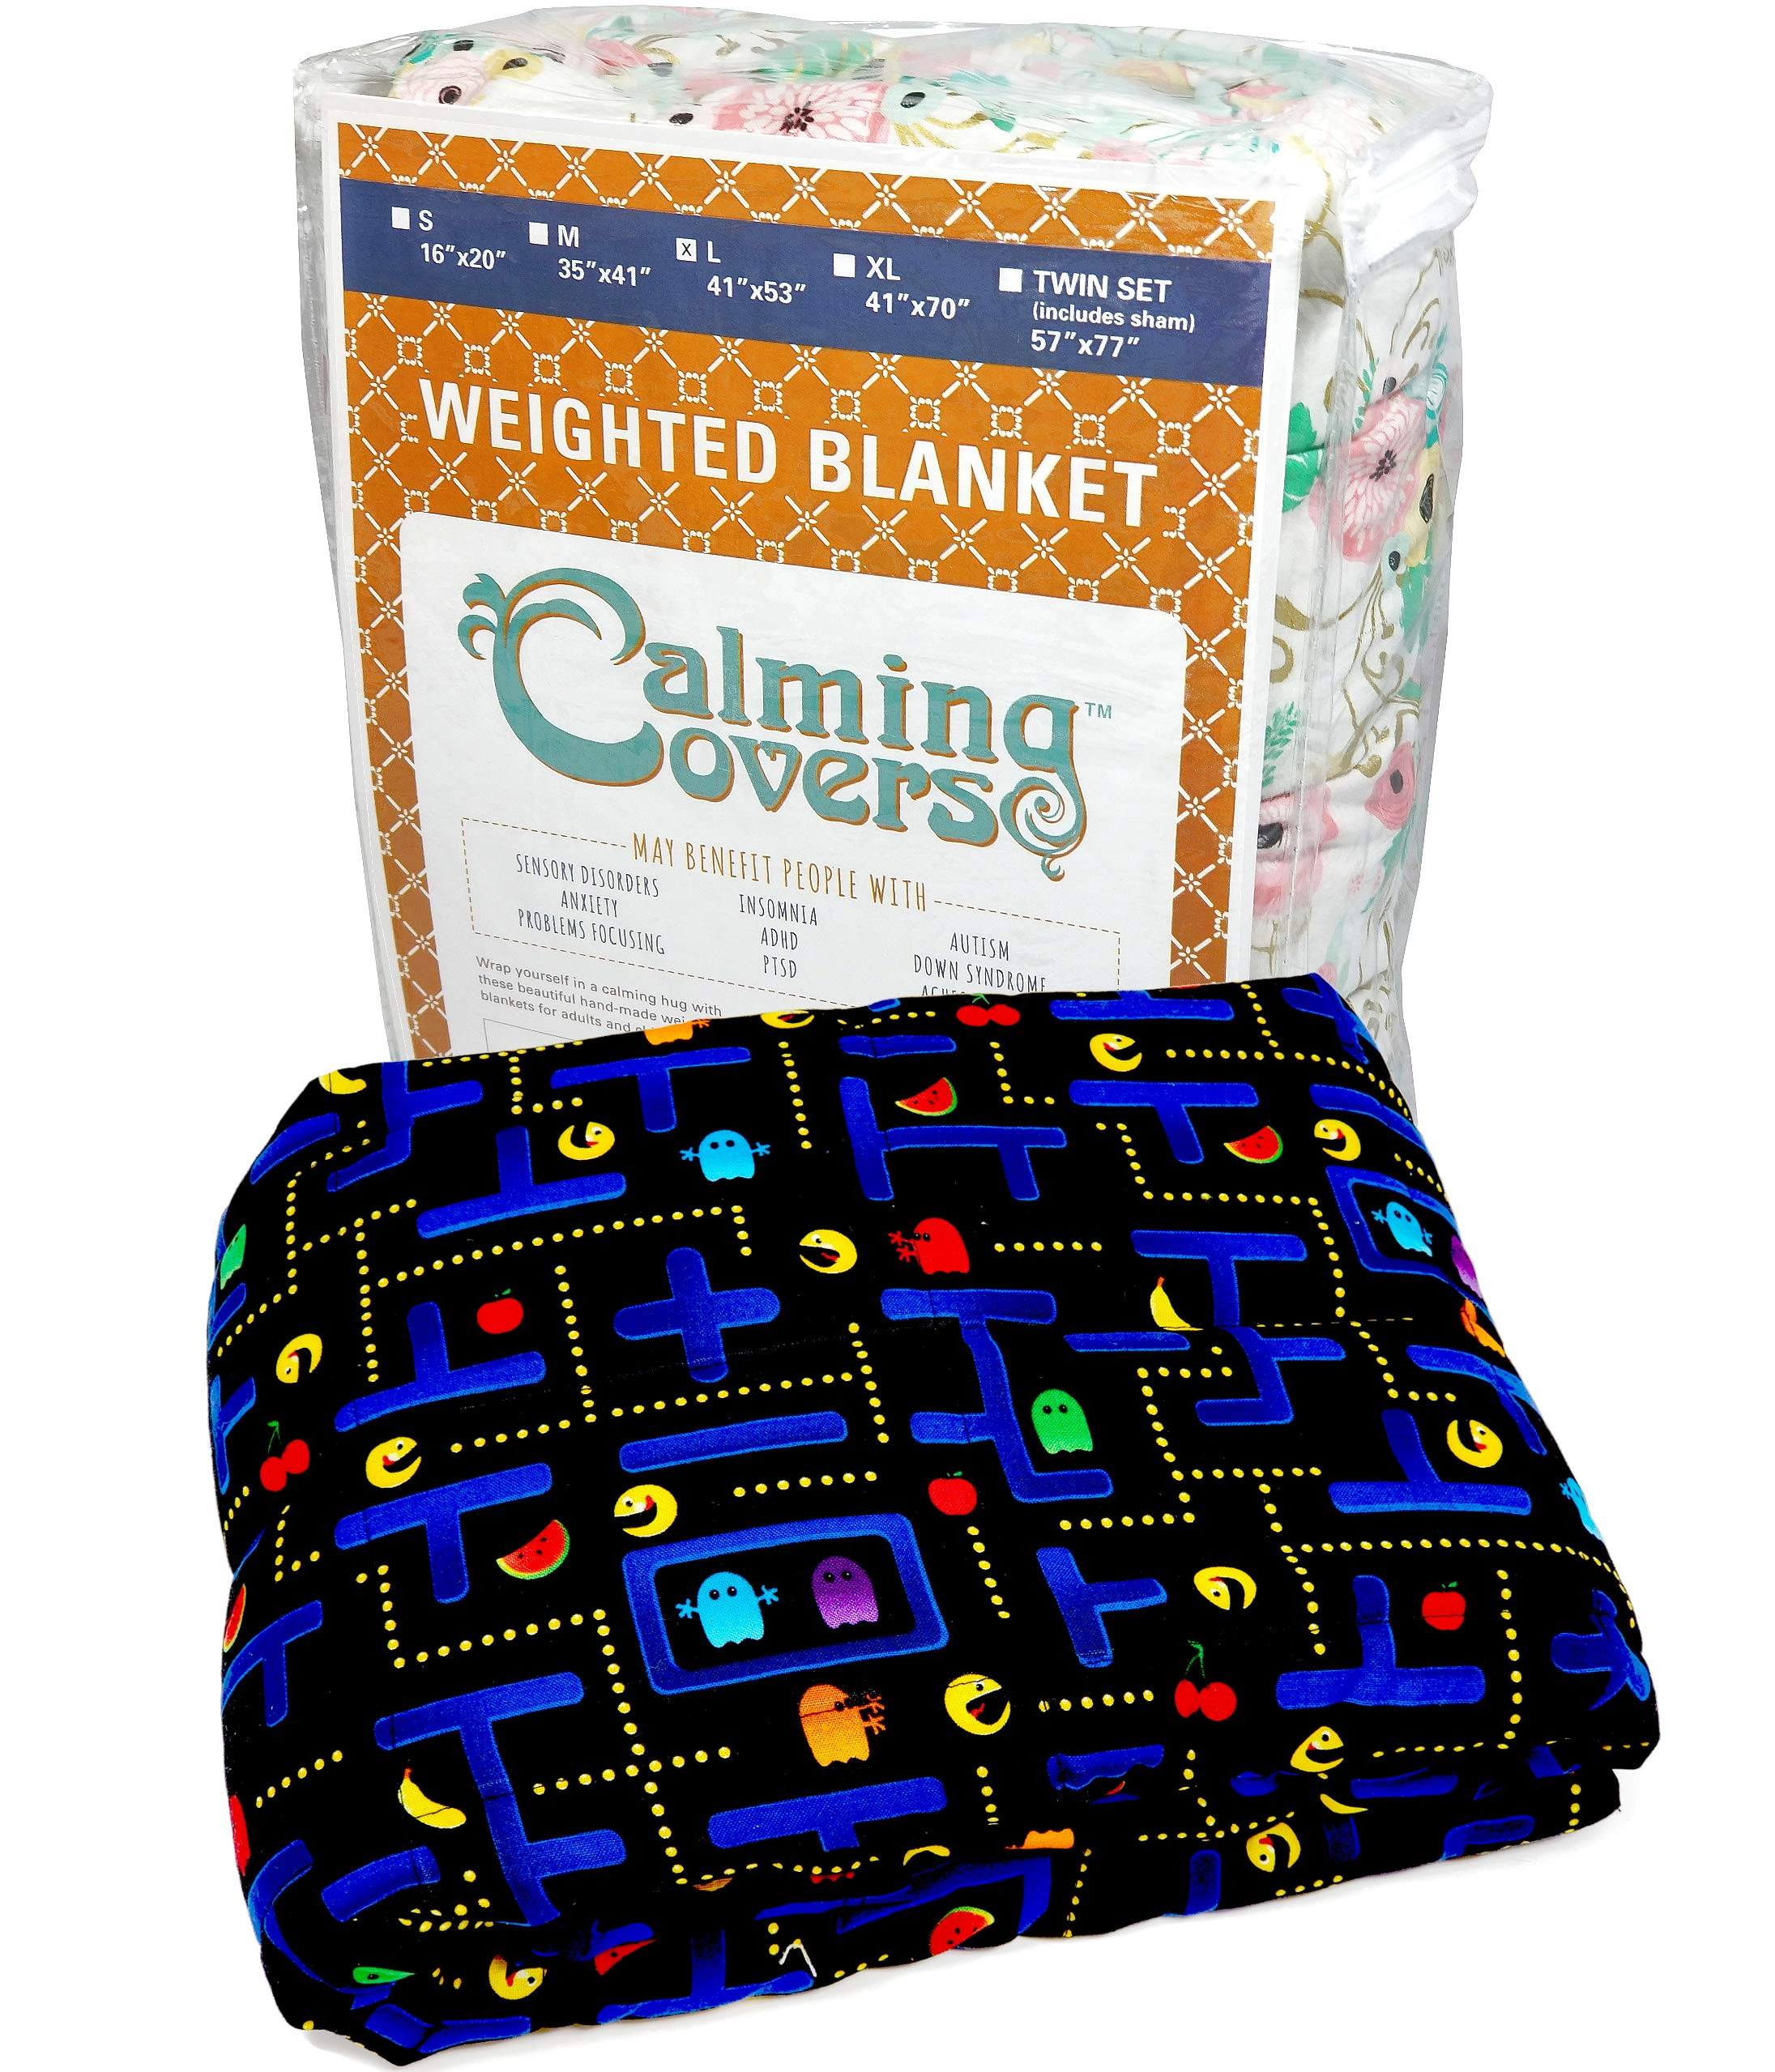 The Swanky Stitchery Designer Weighted Blanket kids (adult) | Dozens cute styles in many sizes | Gravity blankets may help relieve anxiety, stress & insomnia | Style - Arcade | Cotton - 6 lbs